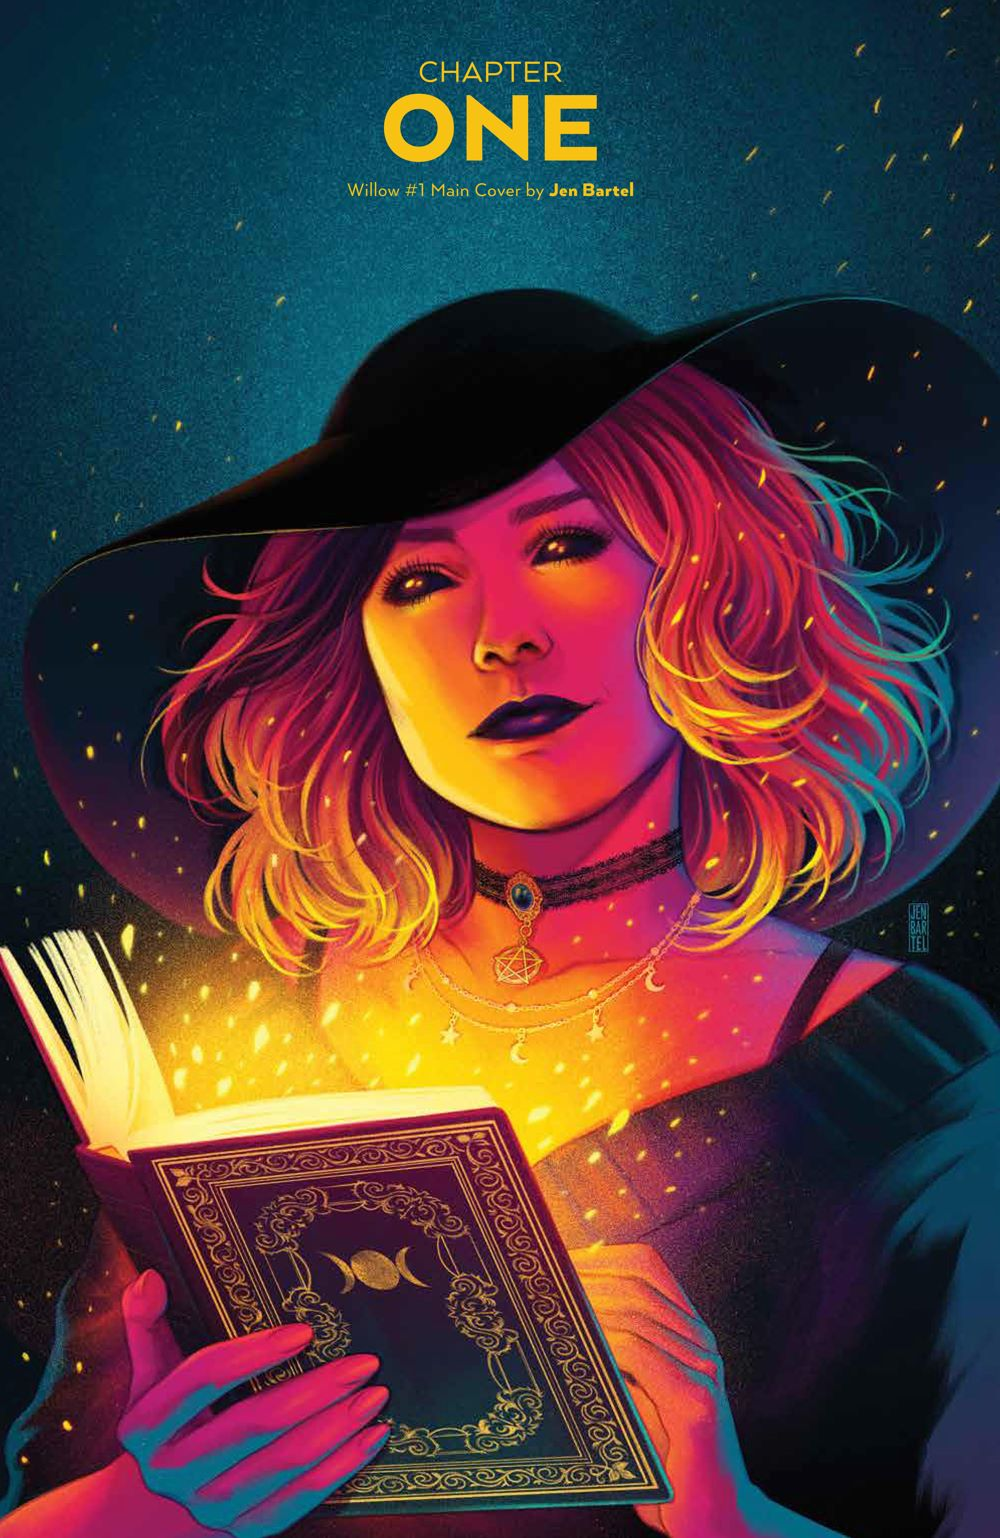 Buffy_Willow_SC_PRESS_8 ComicList Previews: BUFFY THE VAMPIRE SLAYER WILLOW TP